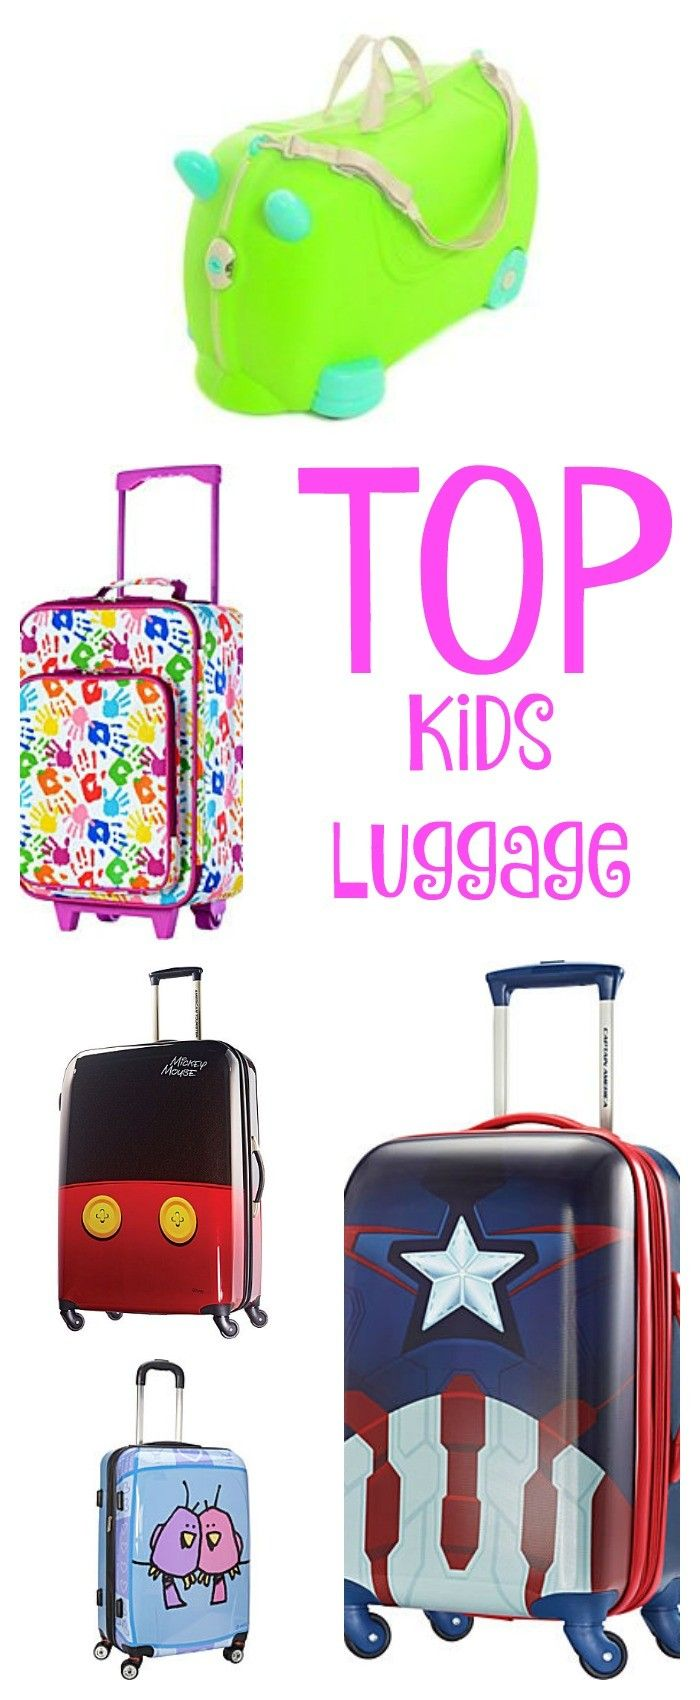 Family travel means packing the kids stuff. Letting them have their own suitcase is a great idea. Make smart decisions on you kid luggage purchase.